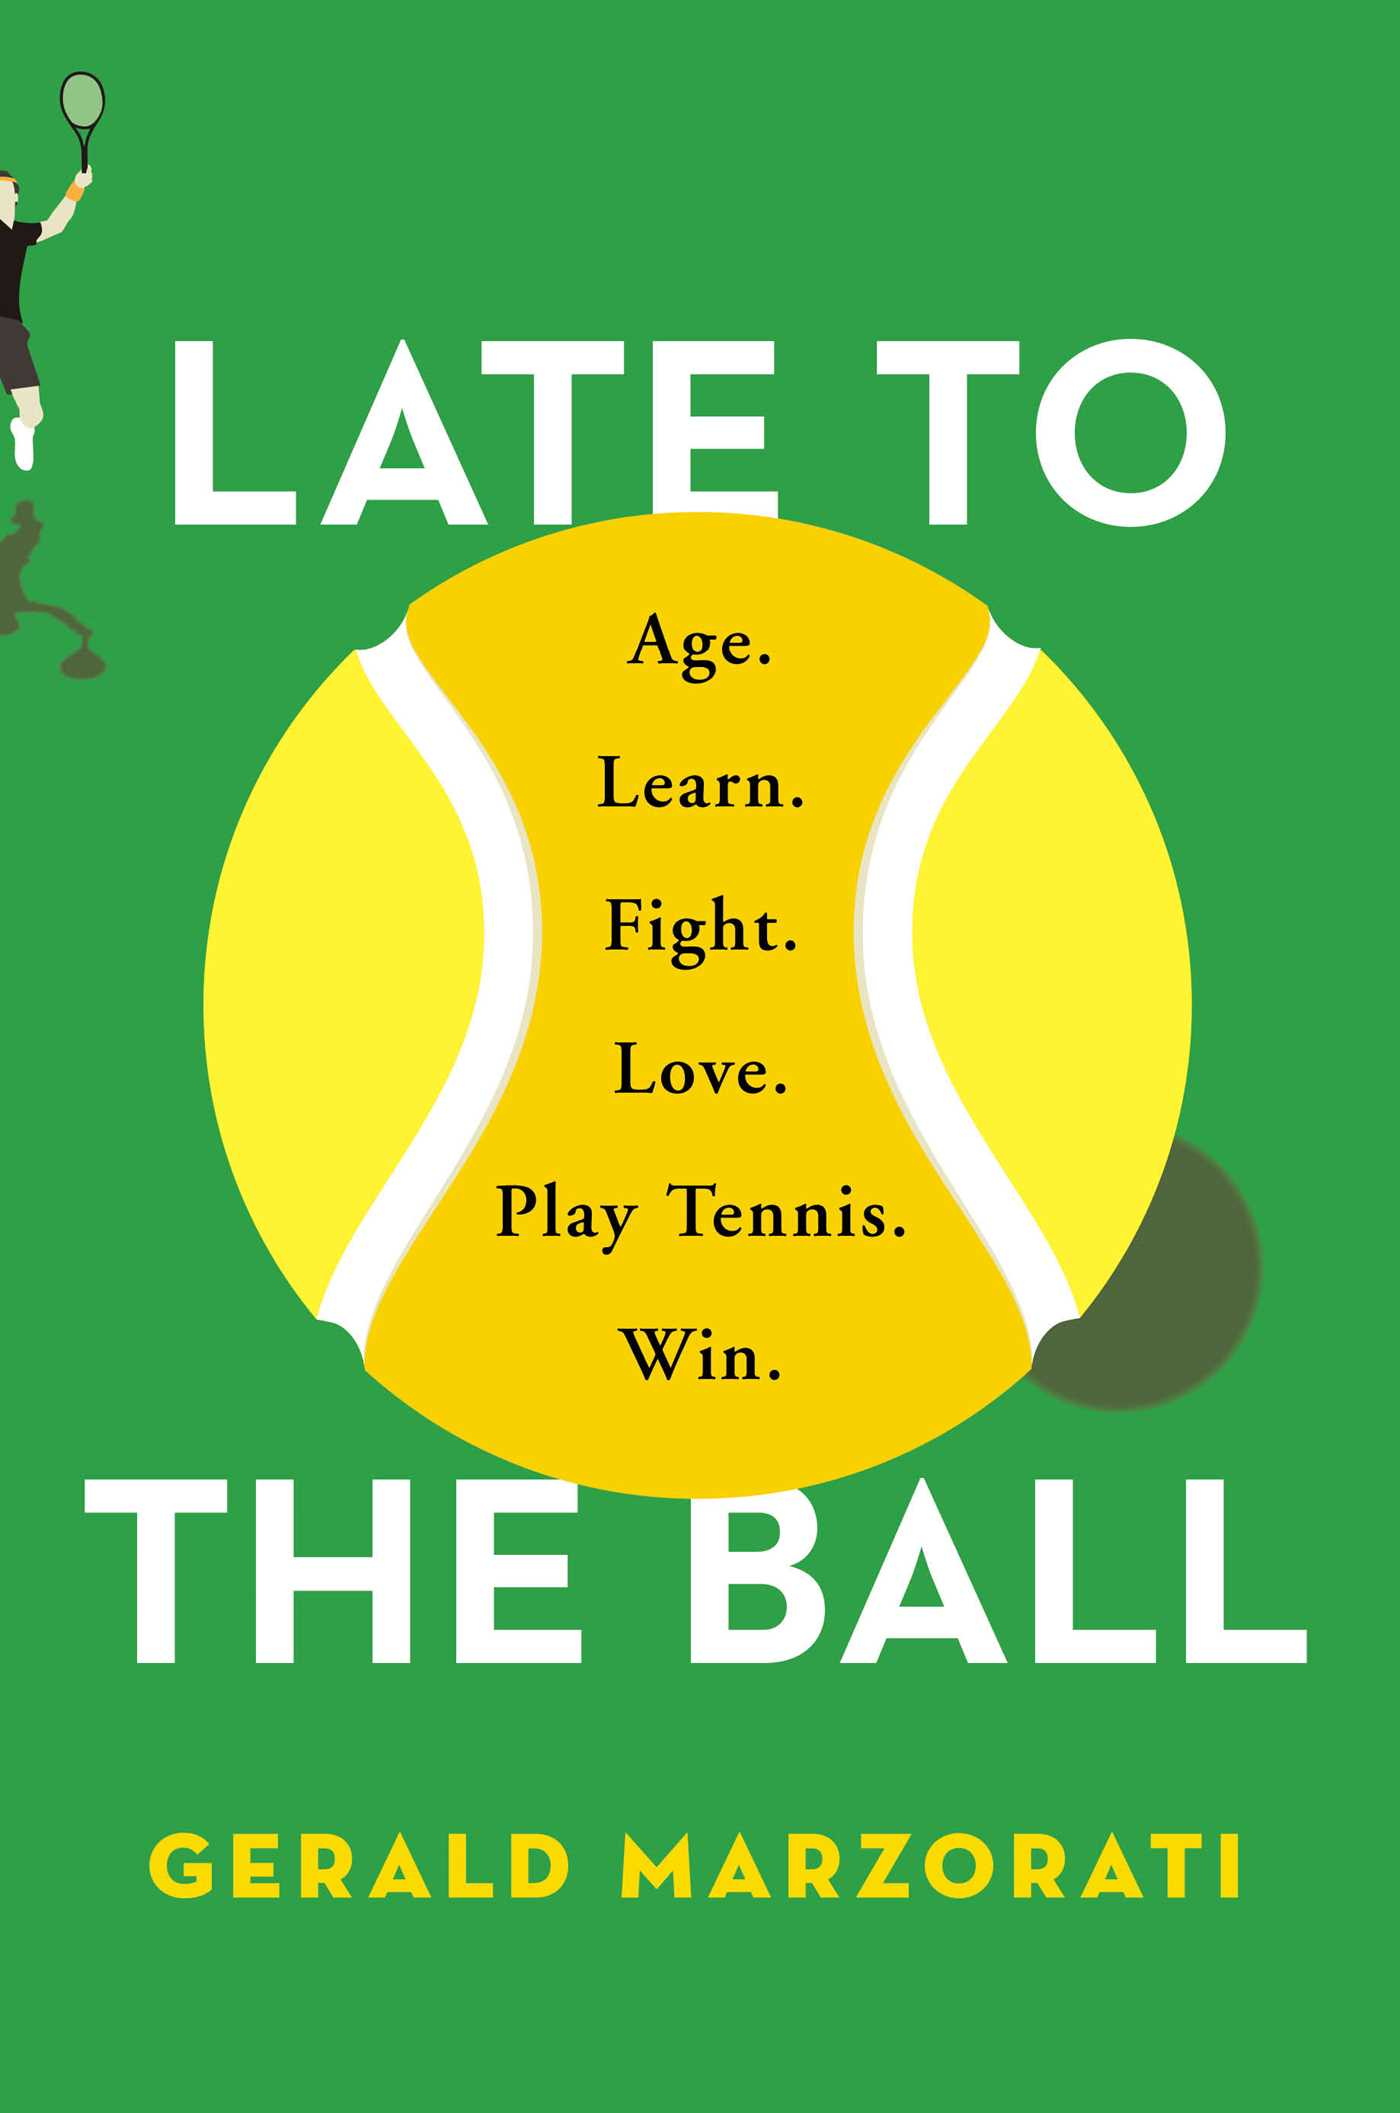 Late to the ball 9781476737393 hr